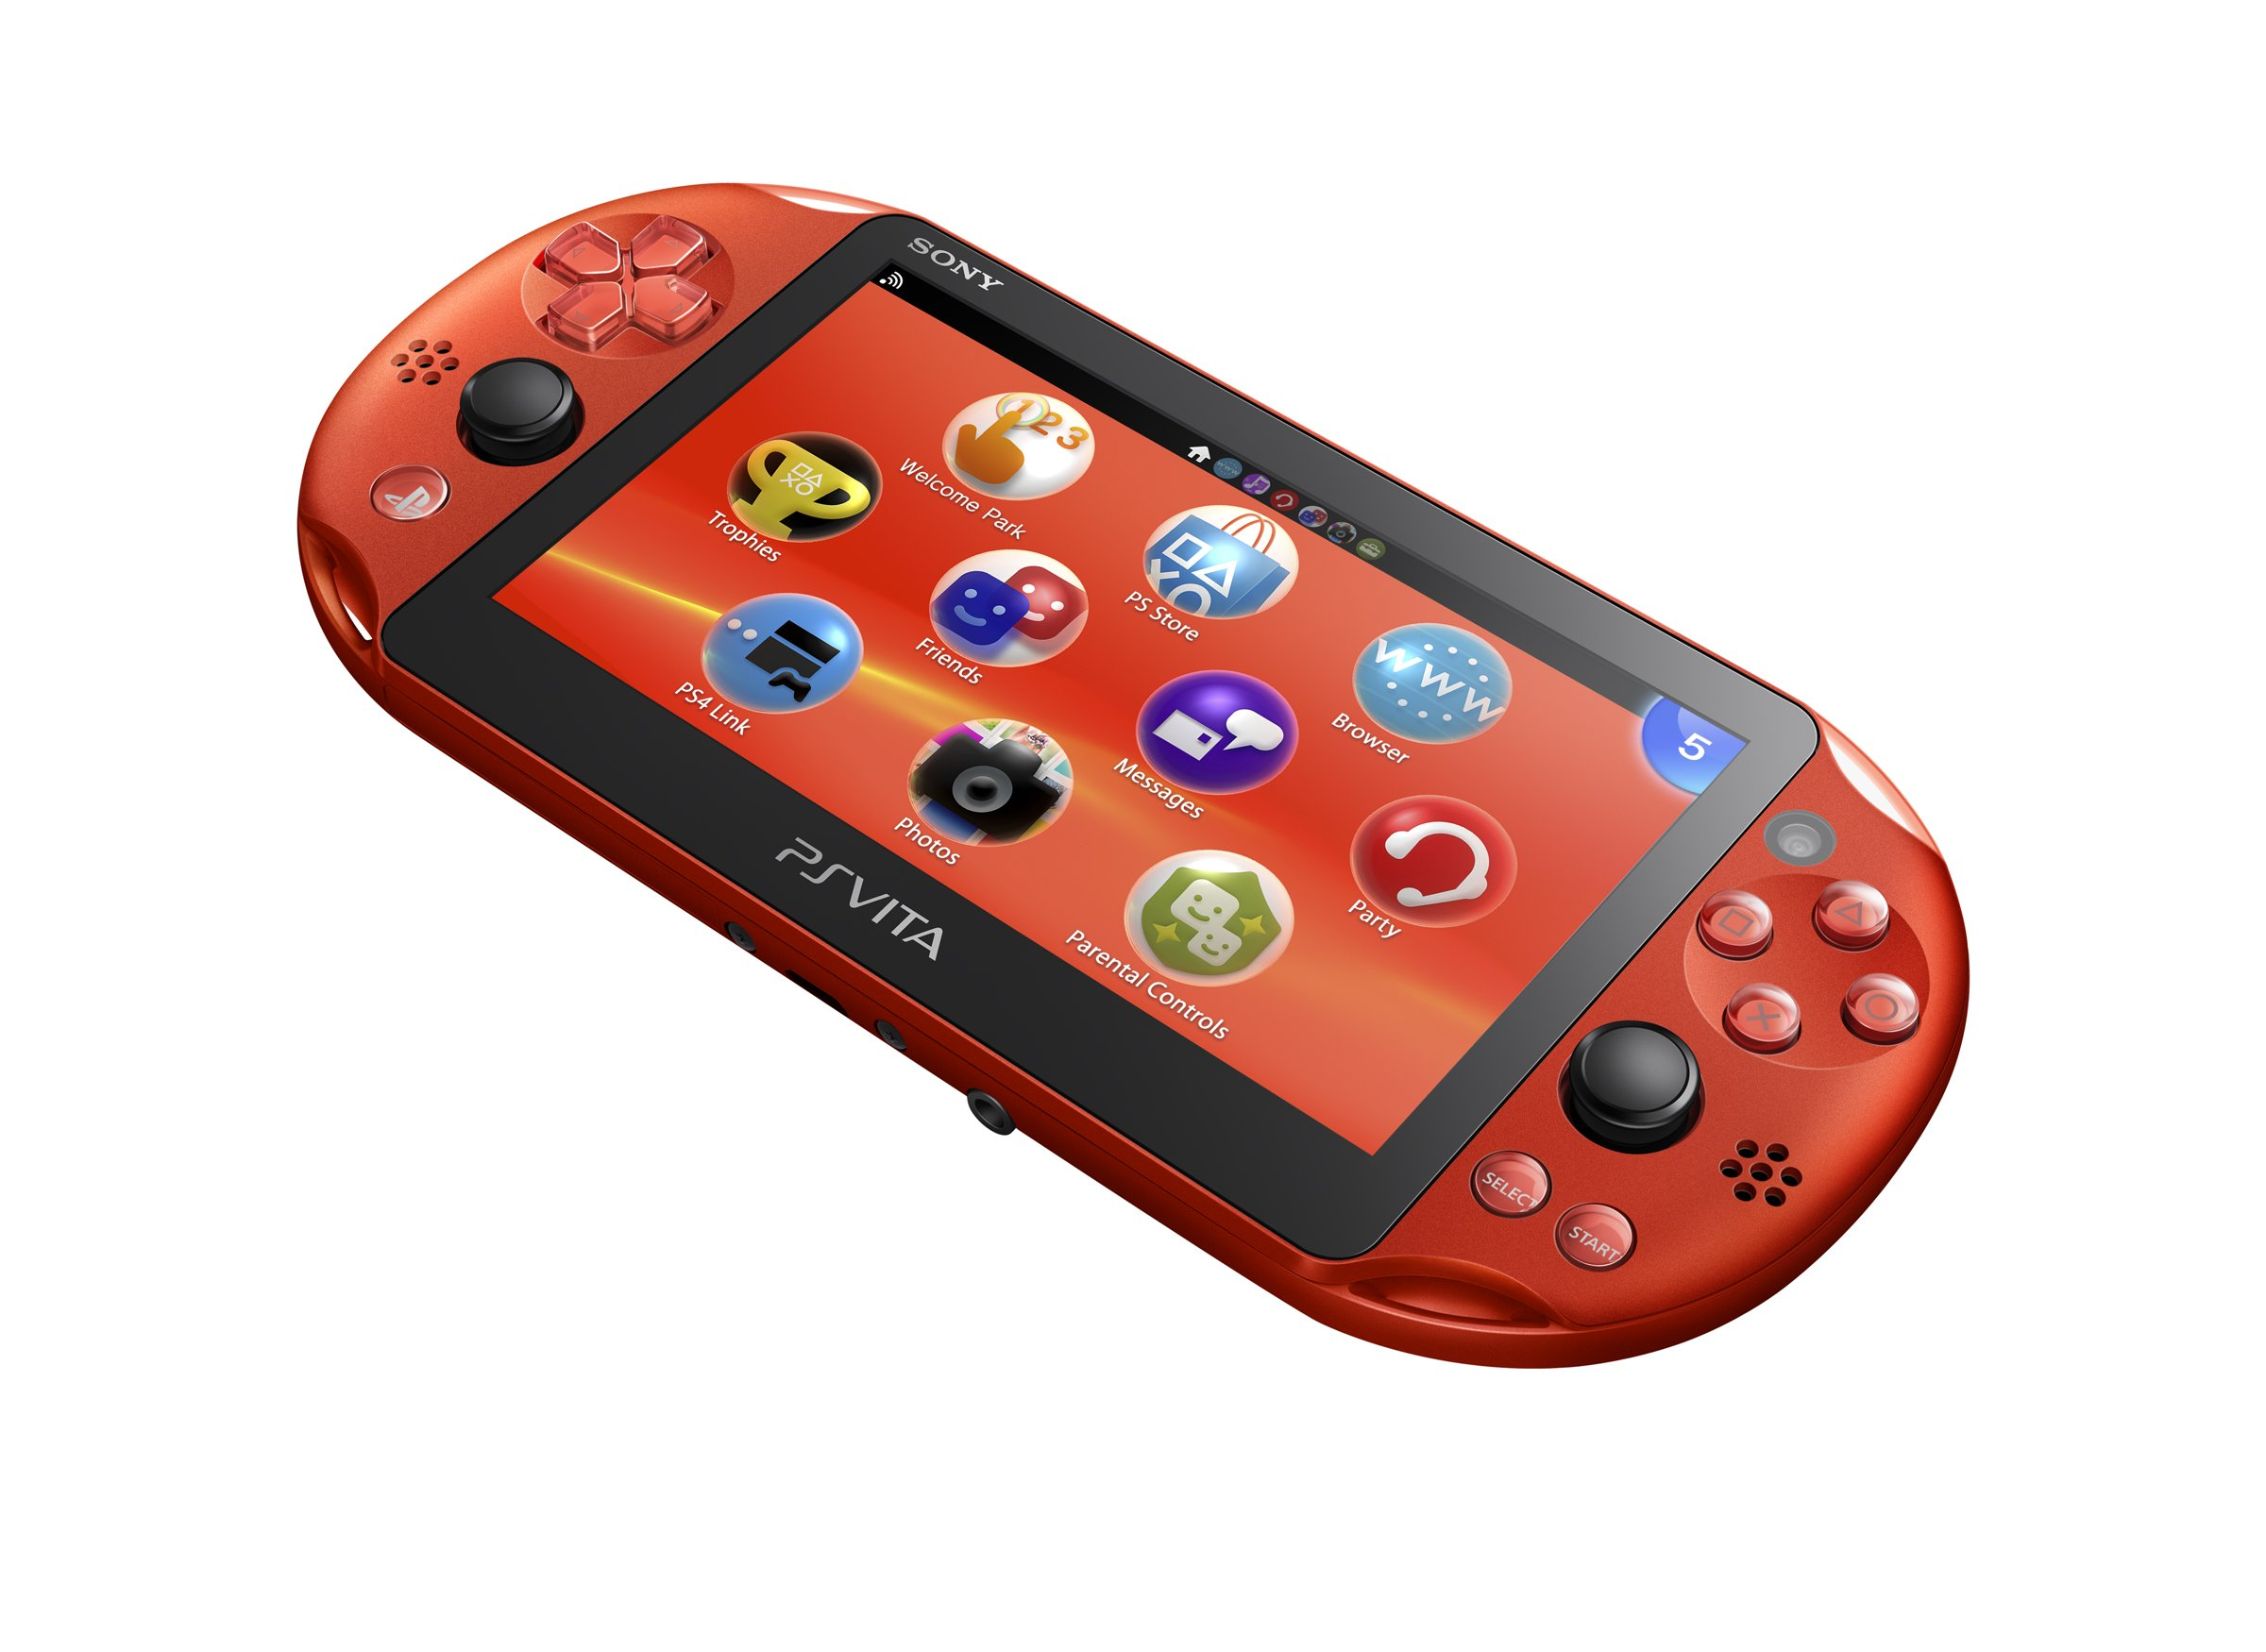 PlayStation Vita Wi-Fi Metallic Red PCH-2000ZA26 (Japan Import) by Sony (Image #5)